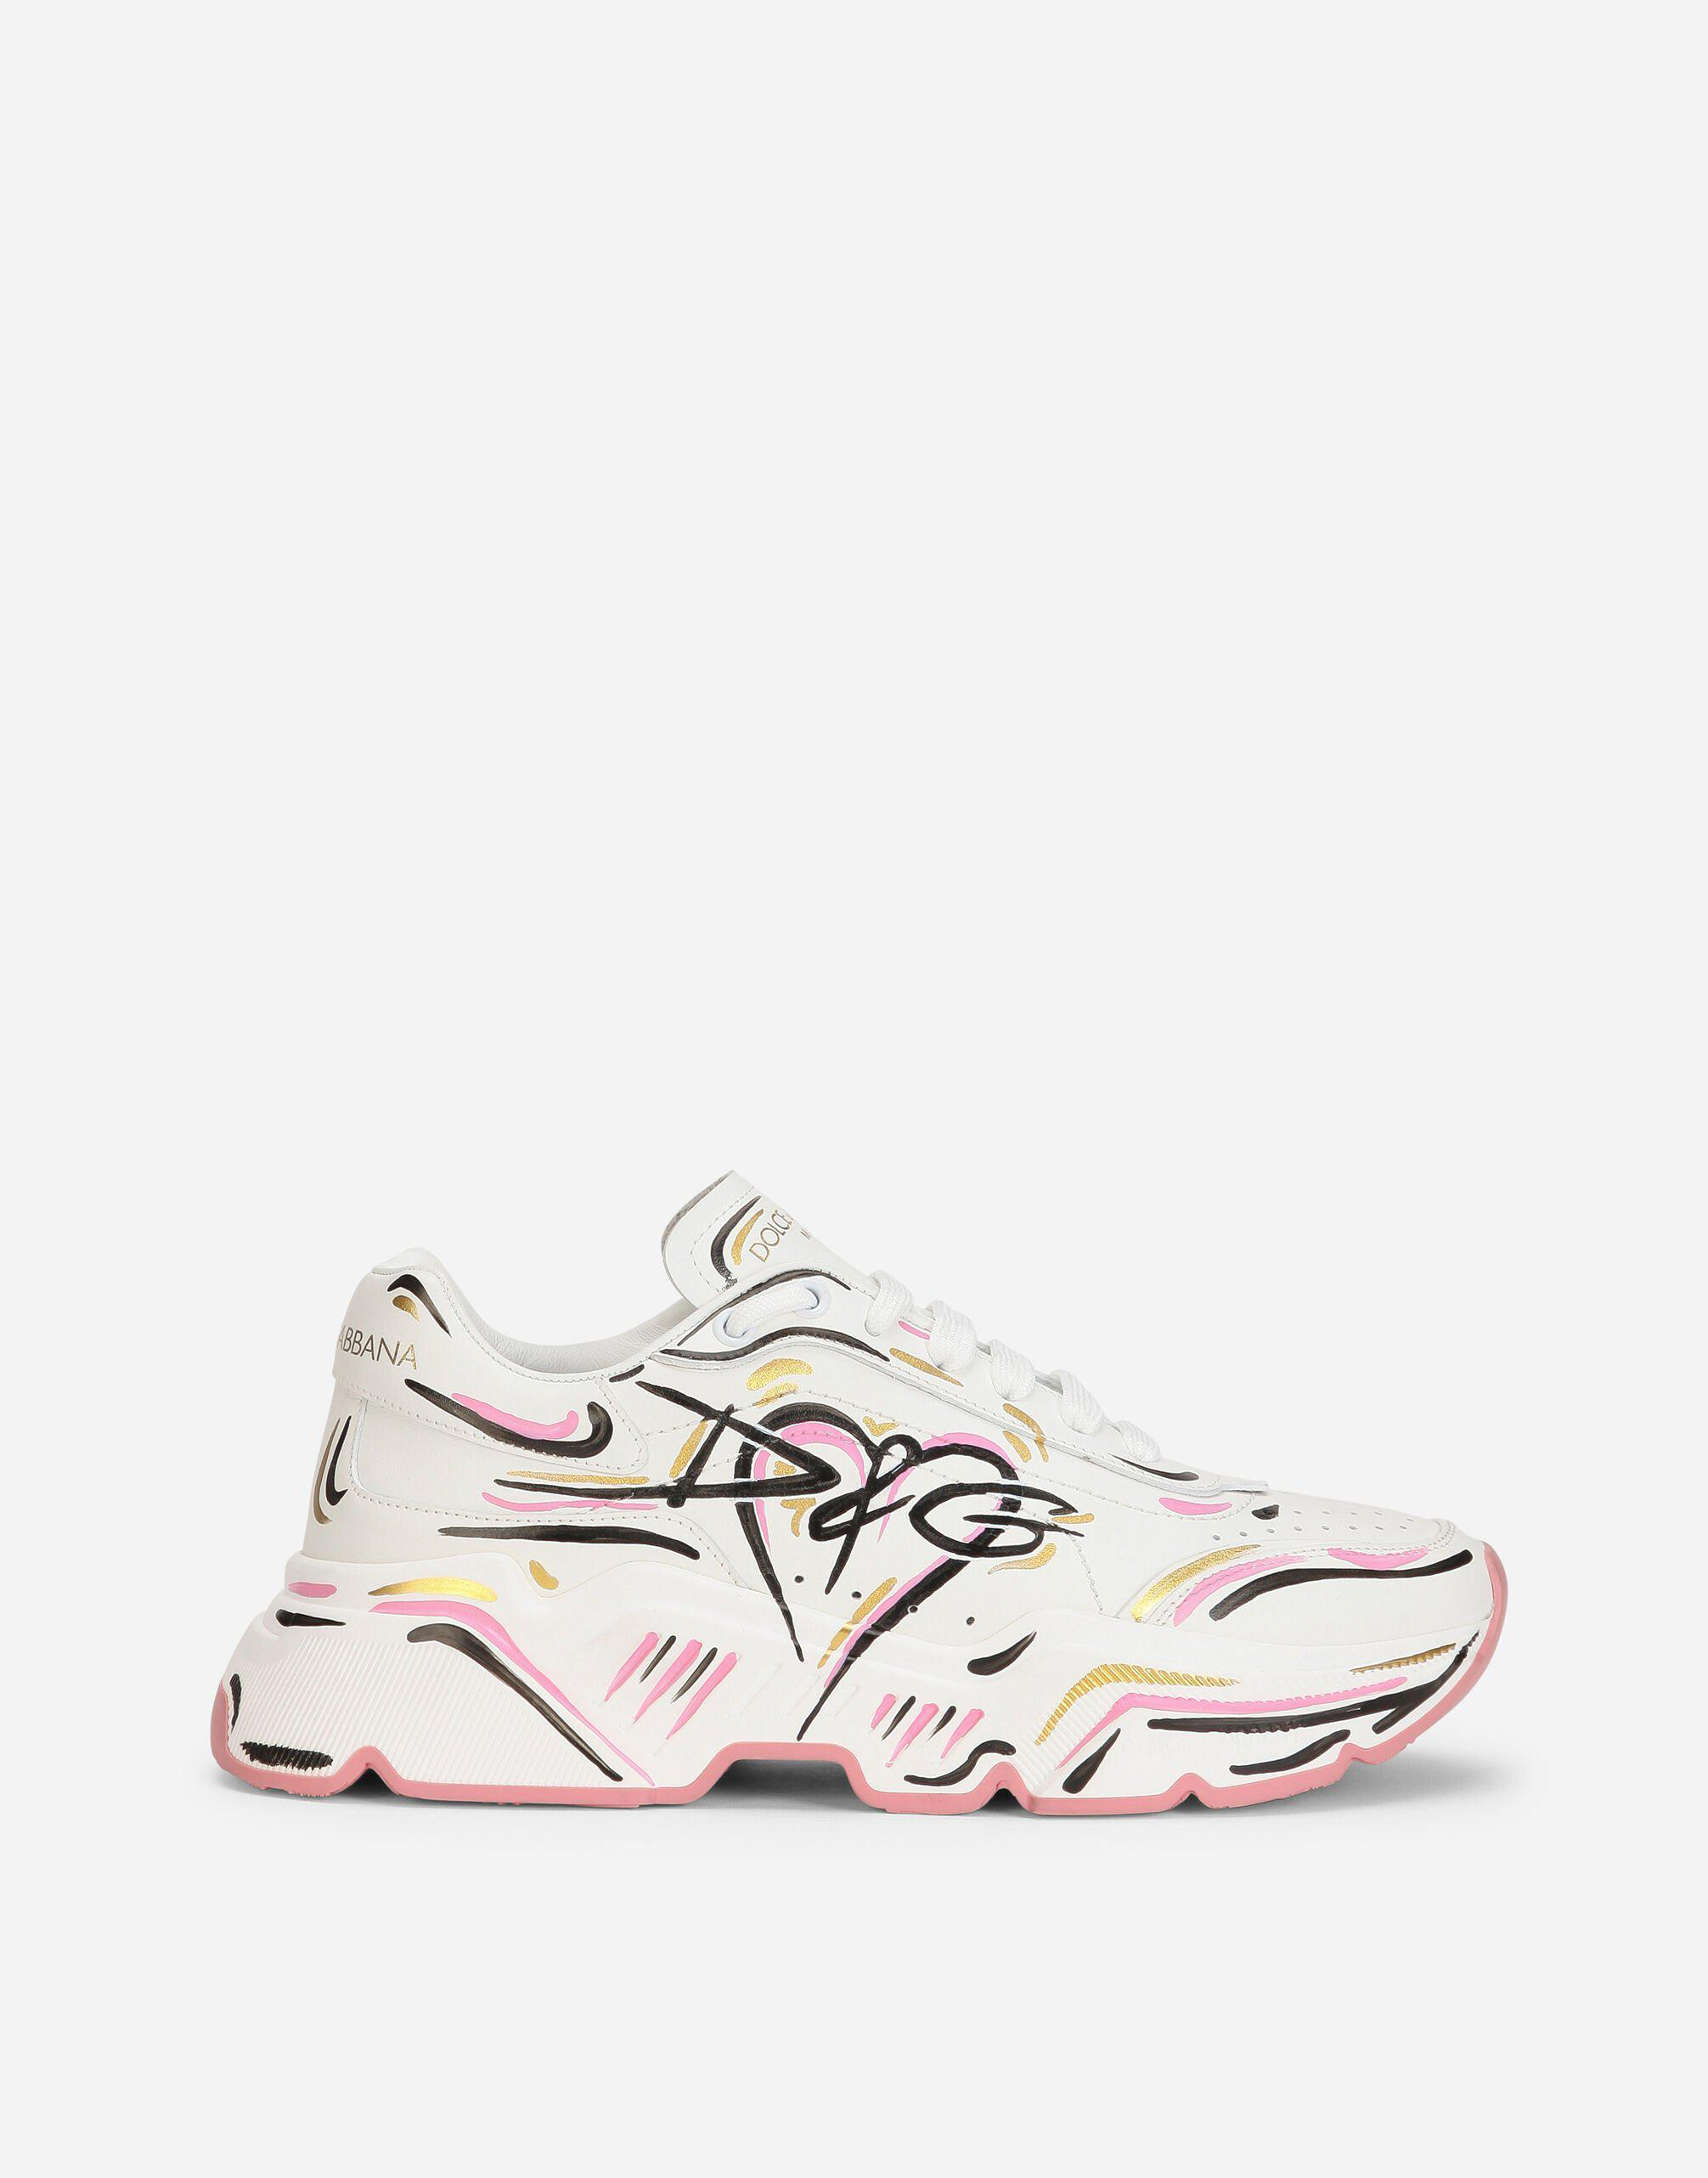 Hand-painted calfskin nappa Daymaster sneakers